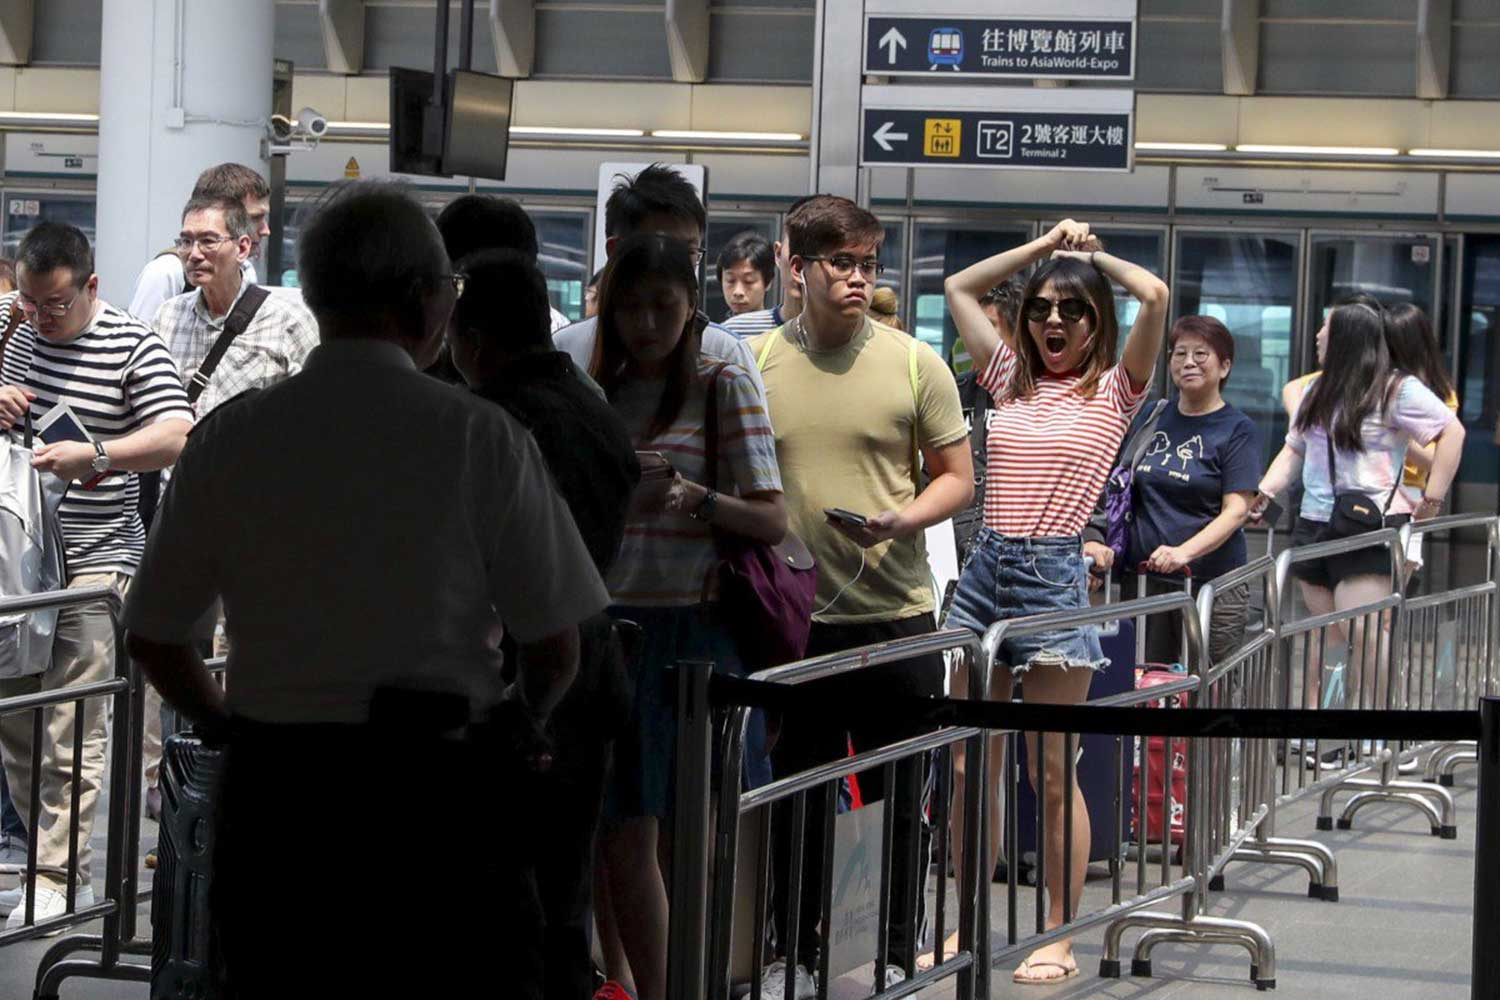 Travellers queue to go through a security check before entering Hong Kong International Airport earlier this month following anti-government protests. (South China Morning Post photo)